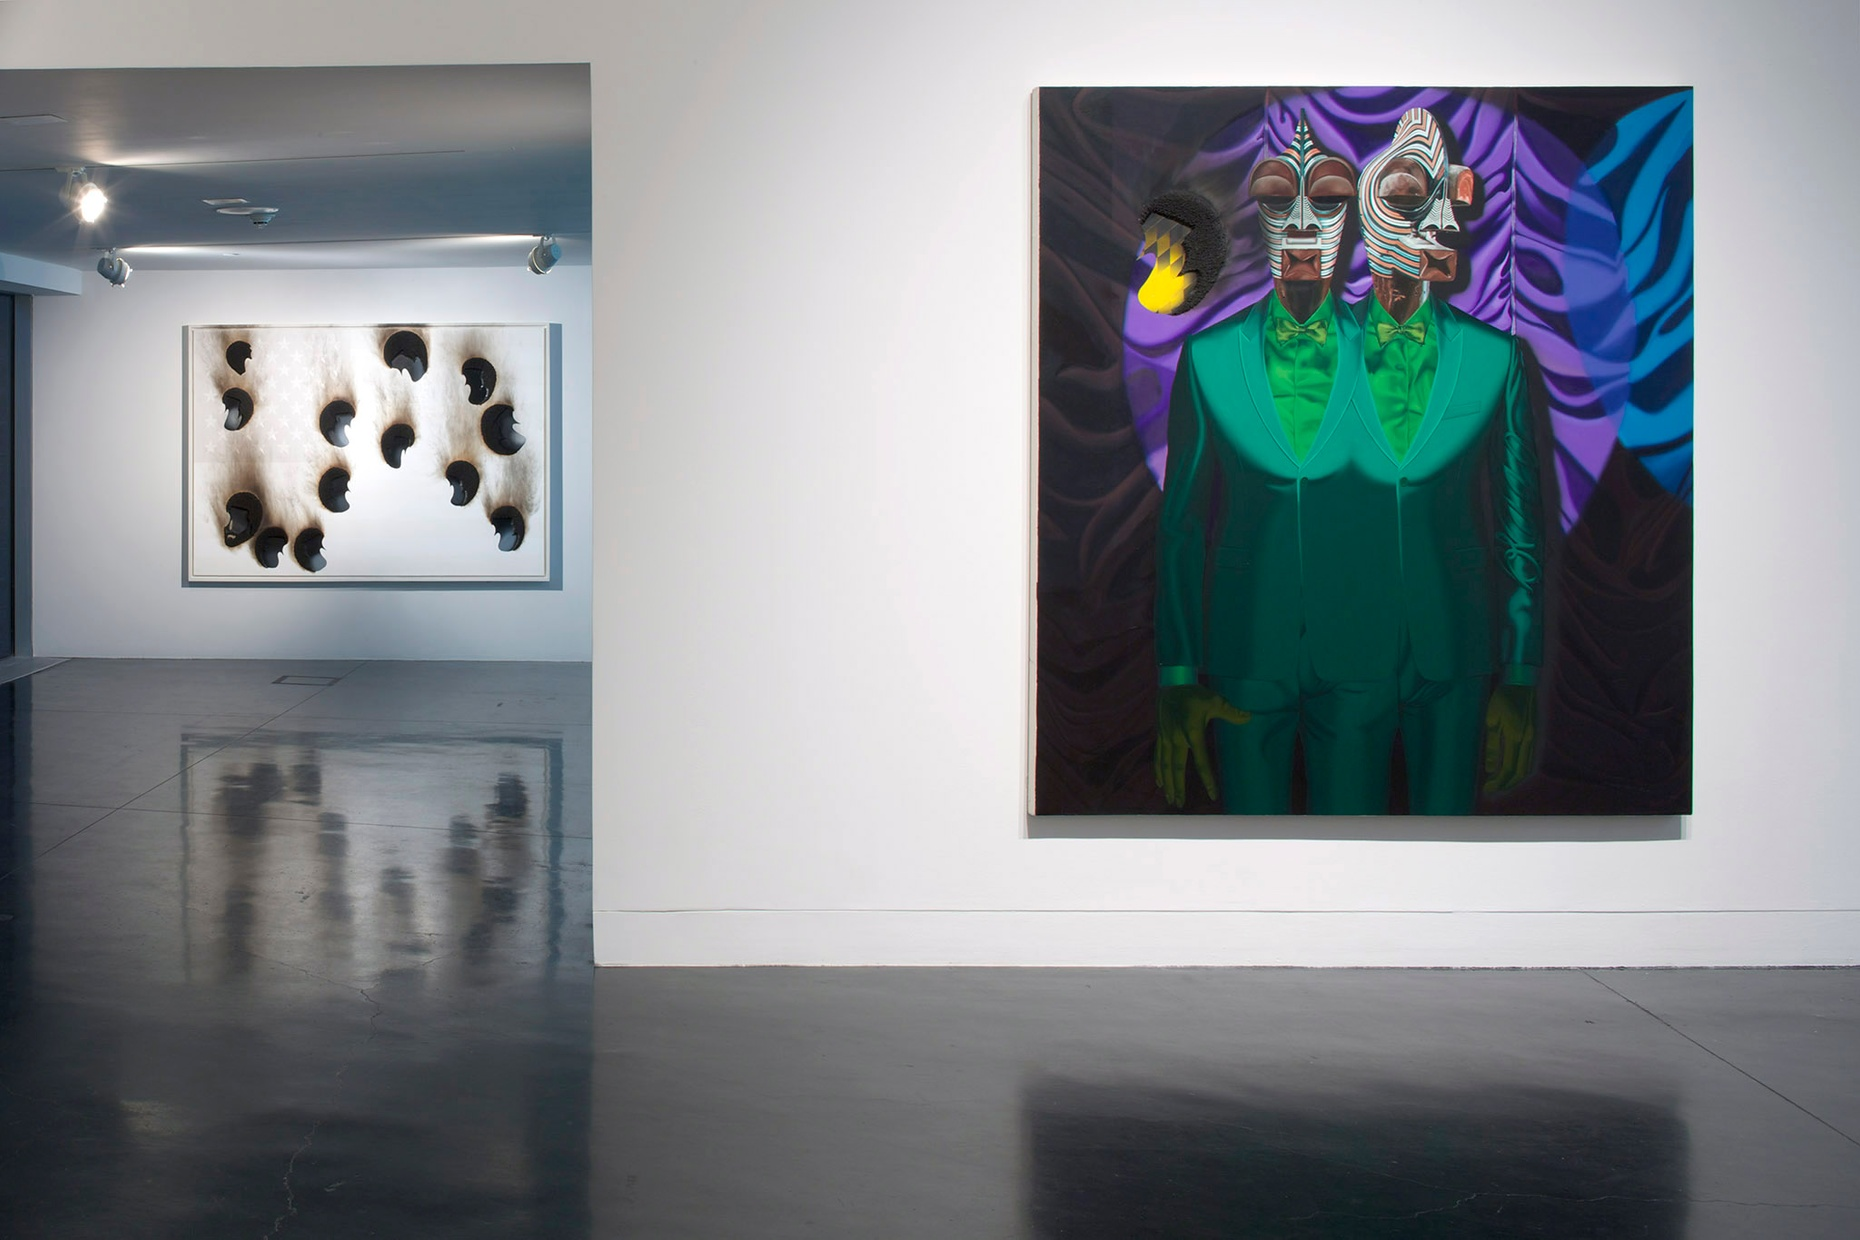 An abstract painting of two Black men in green suits merged together with a black, blue, and purple background hanging on a white wall.